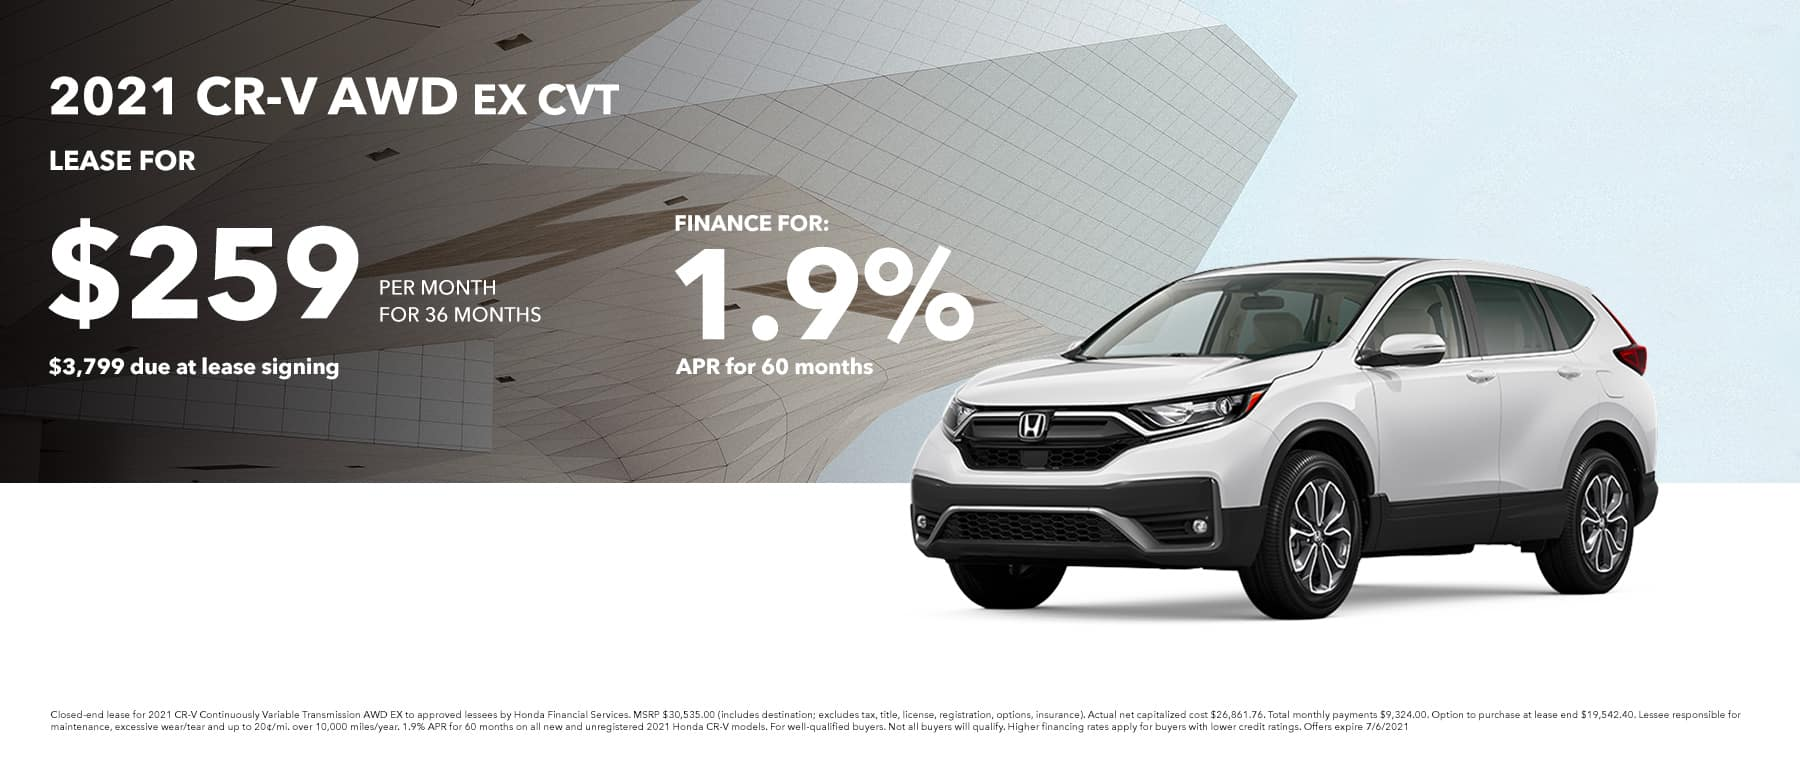 2021 CR-V AWD EX LEASE FOR: $259 PER MONTH FOR 36 MONTHS $3,799 DUE AT SIGNING FINANCE FOR 1.9% APR FOR 60 MONTHS